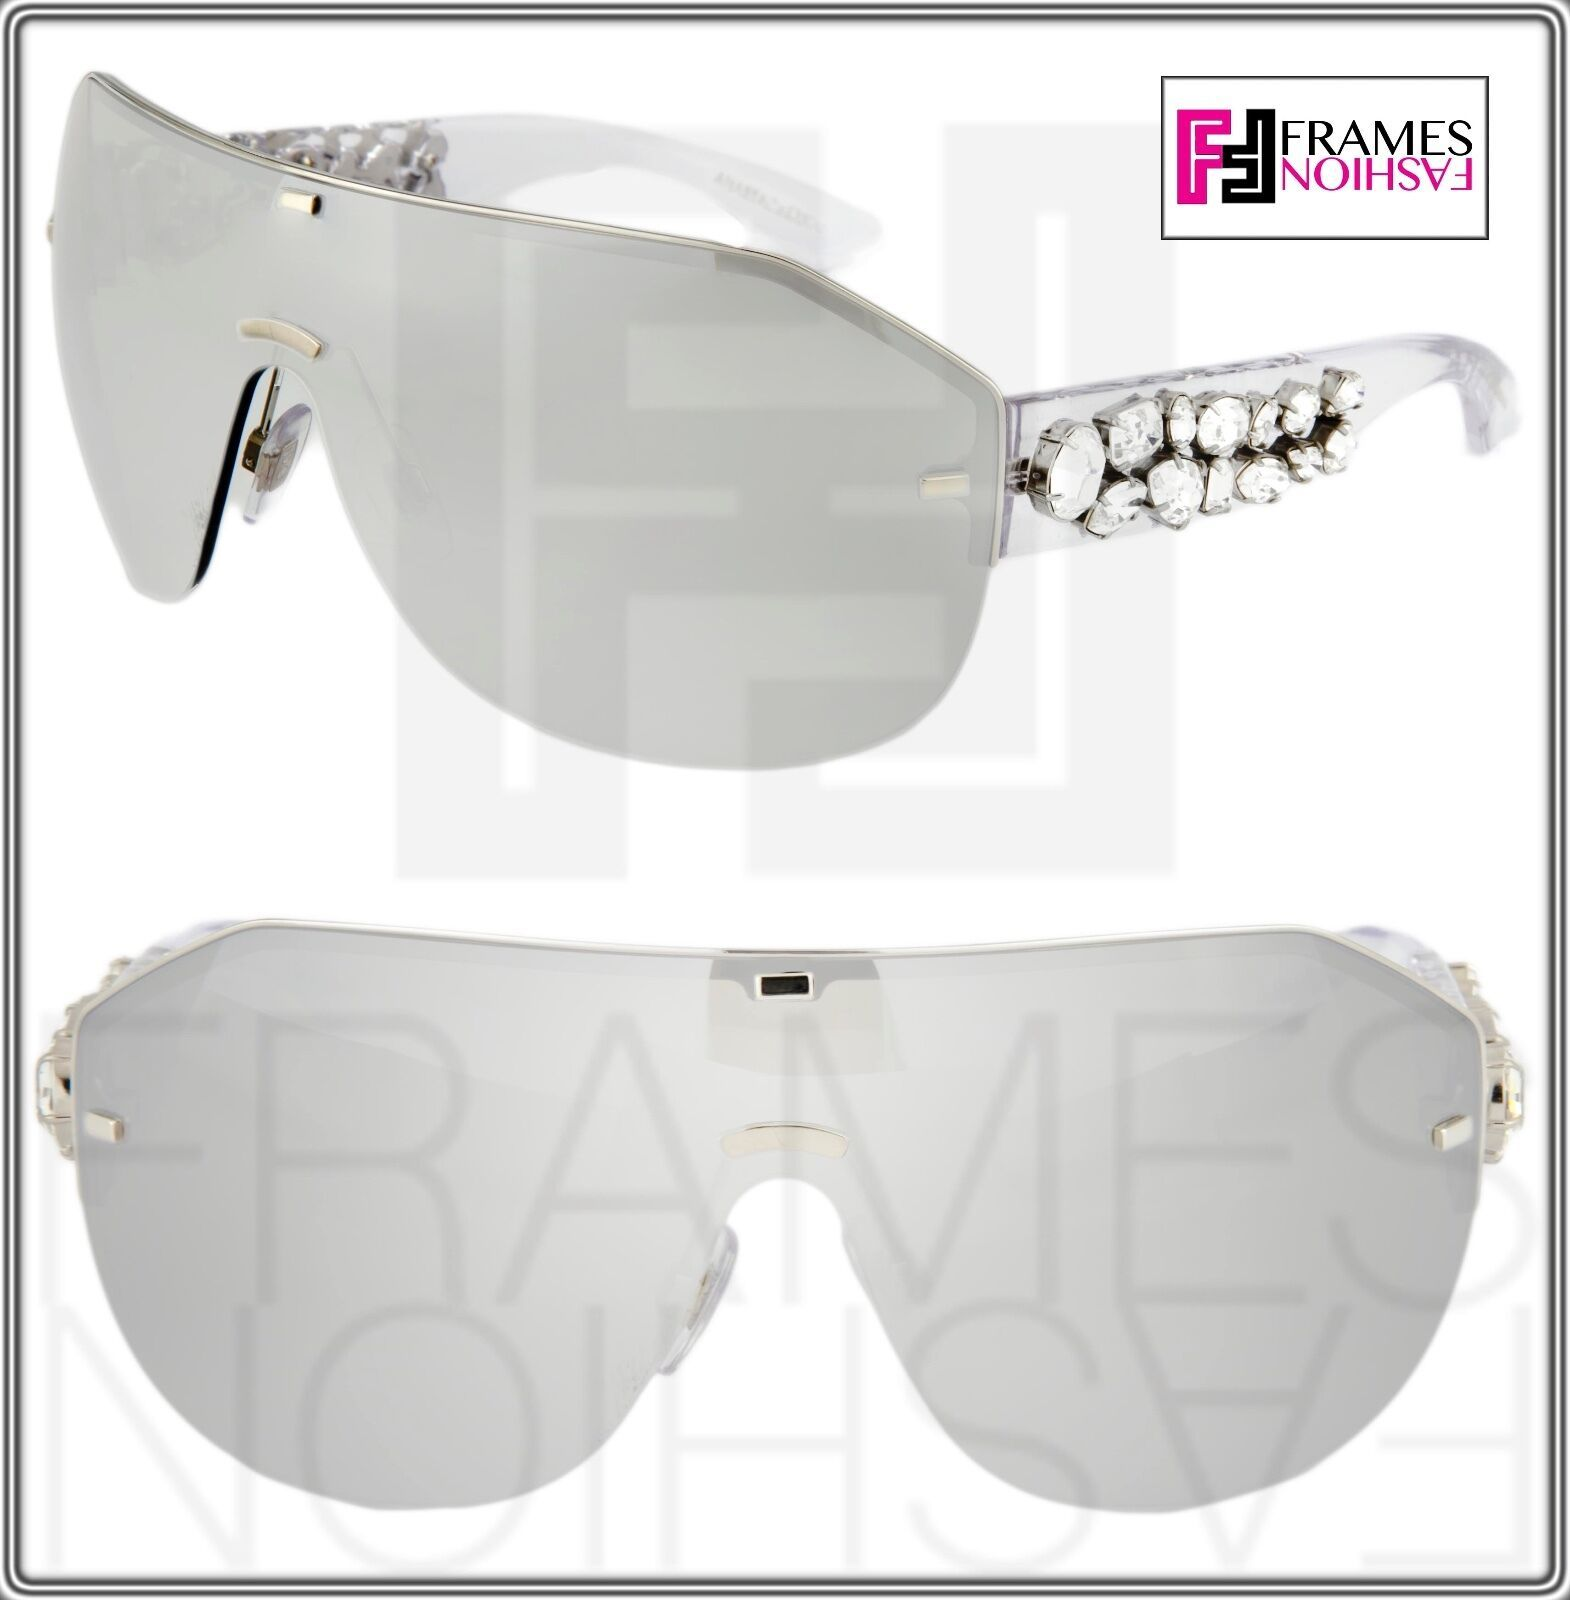 Dolce & Gabbana DG 2150B Clear Silver Wrap Oversized Mirrored Sunglasses Women